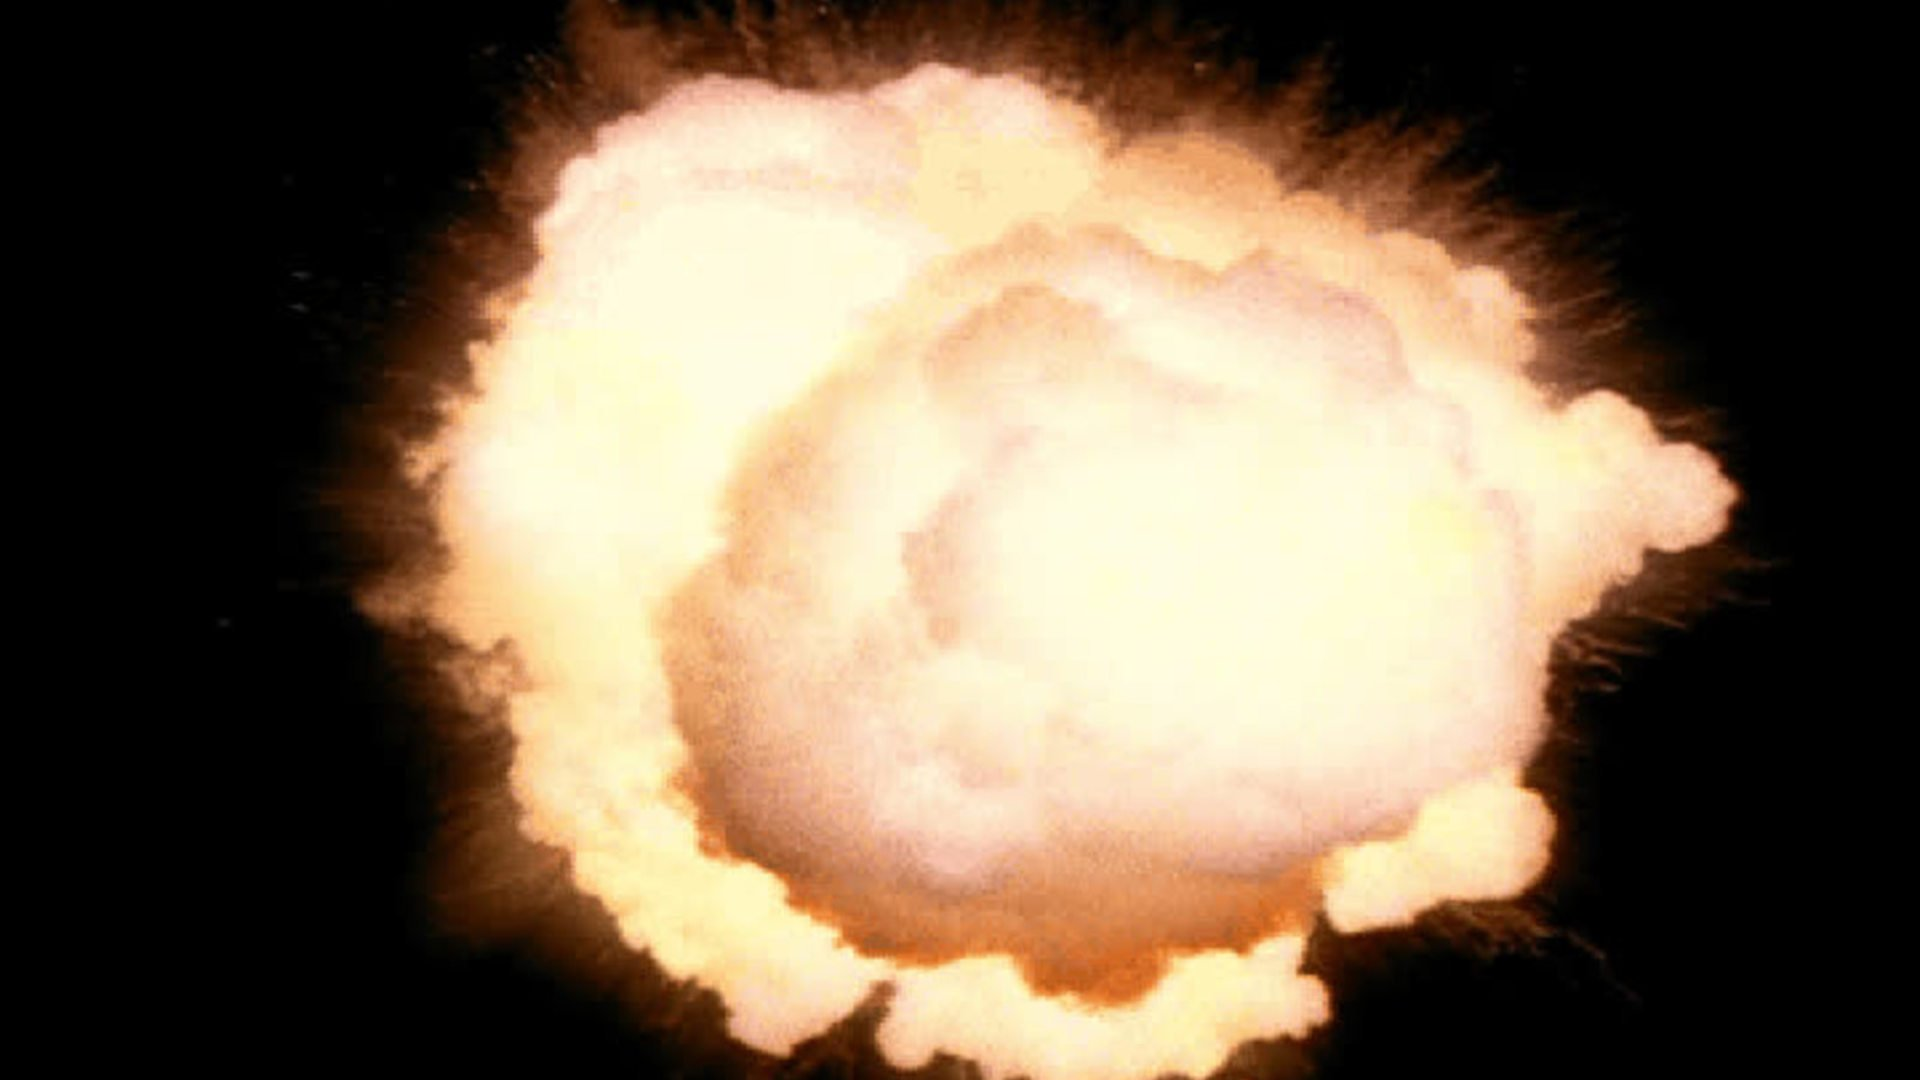 Explosion - Free HD Video Clips & Stock Video Footage at